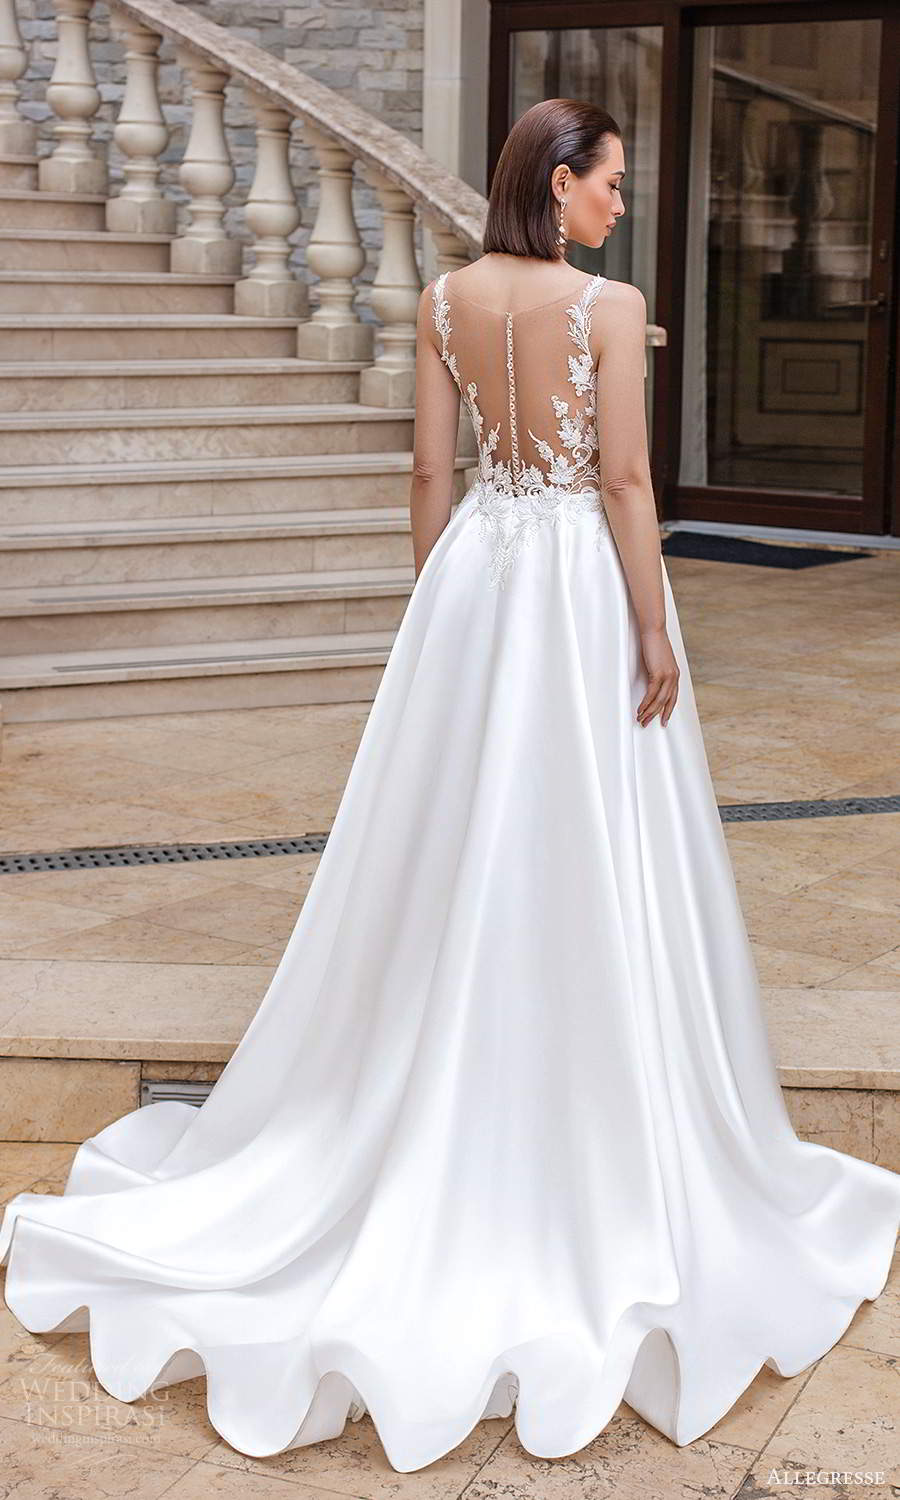 allegresse 2021 bridal sleeveless straps v neckline embellished bodice clean skirt a line ball gown wedding dress chapel train sheer back (7) bv